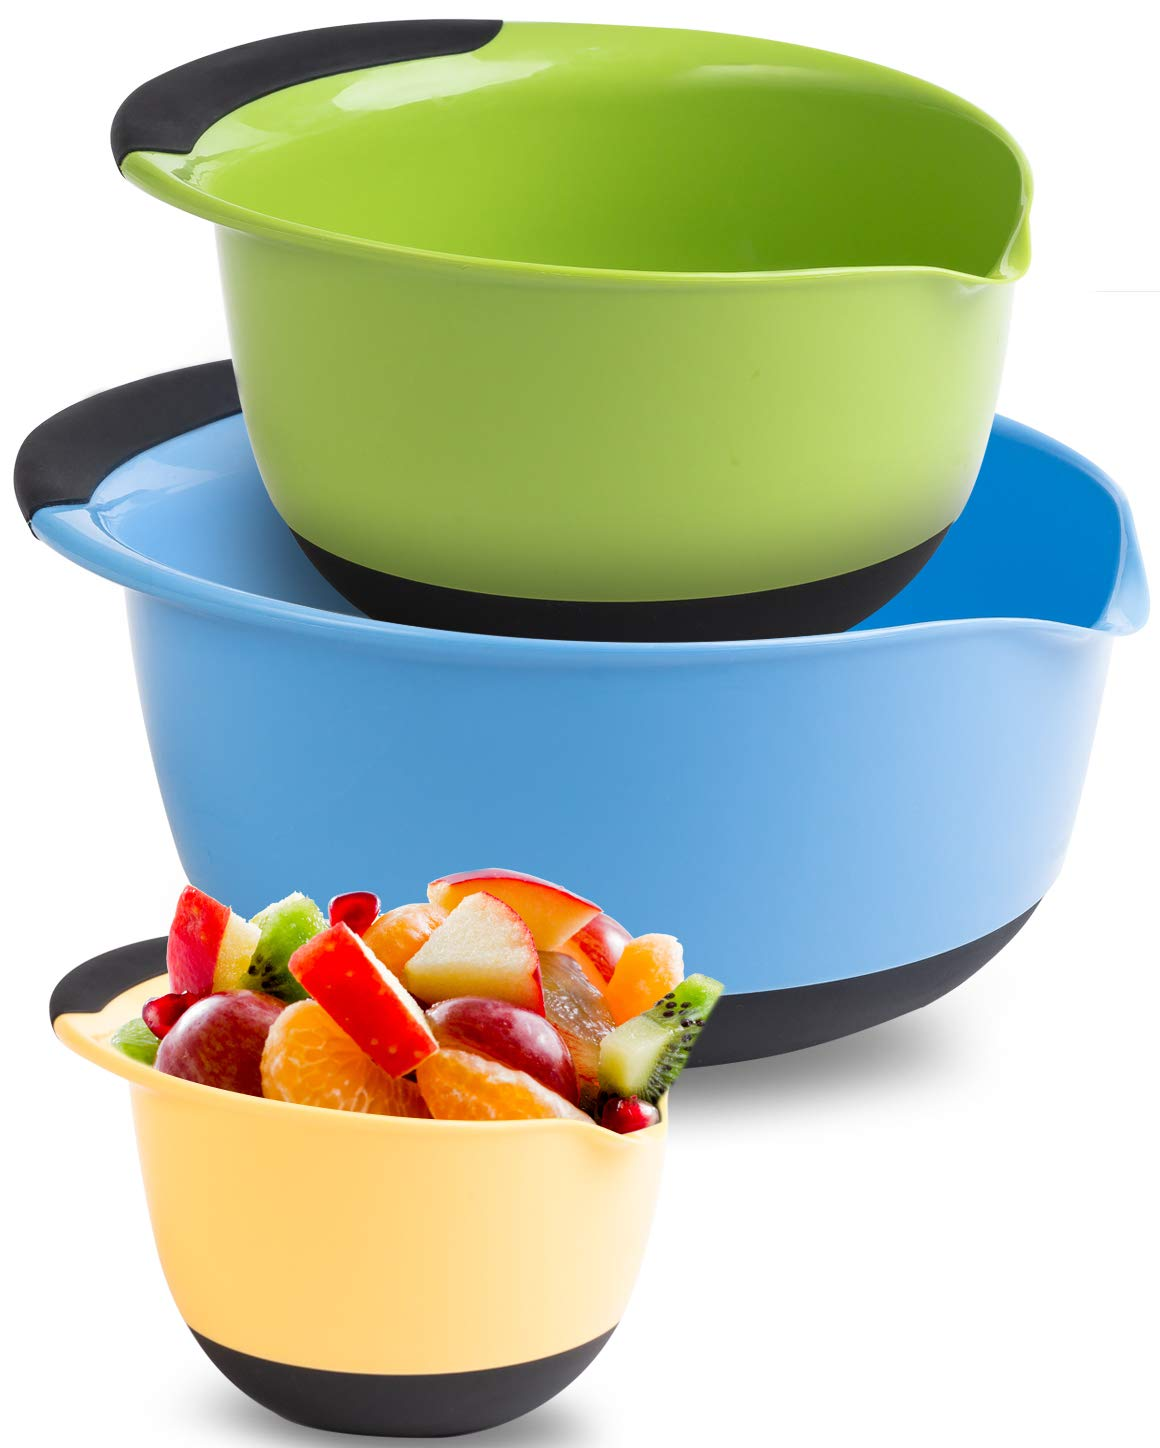 Premium Plastic Mixing Bowls (Set of 3) Sizes: 1.5, 3 & 5 QT - With Non Slip Bottom & Pouring Spout. For Healthy Cooking & Baking, Nesting and Stackable Free Bonus - measuring cup by MONKA (Image #9)